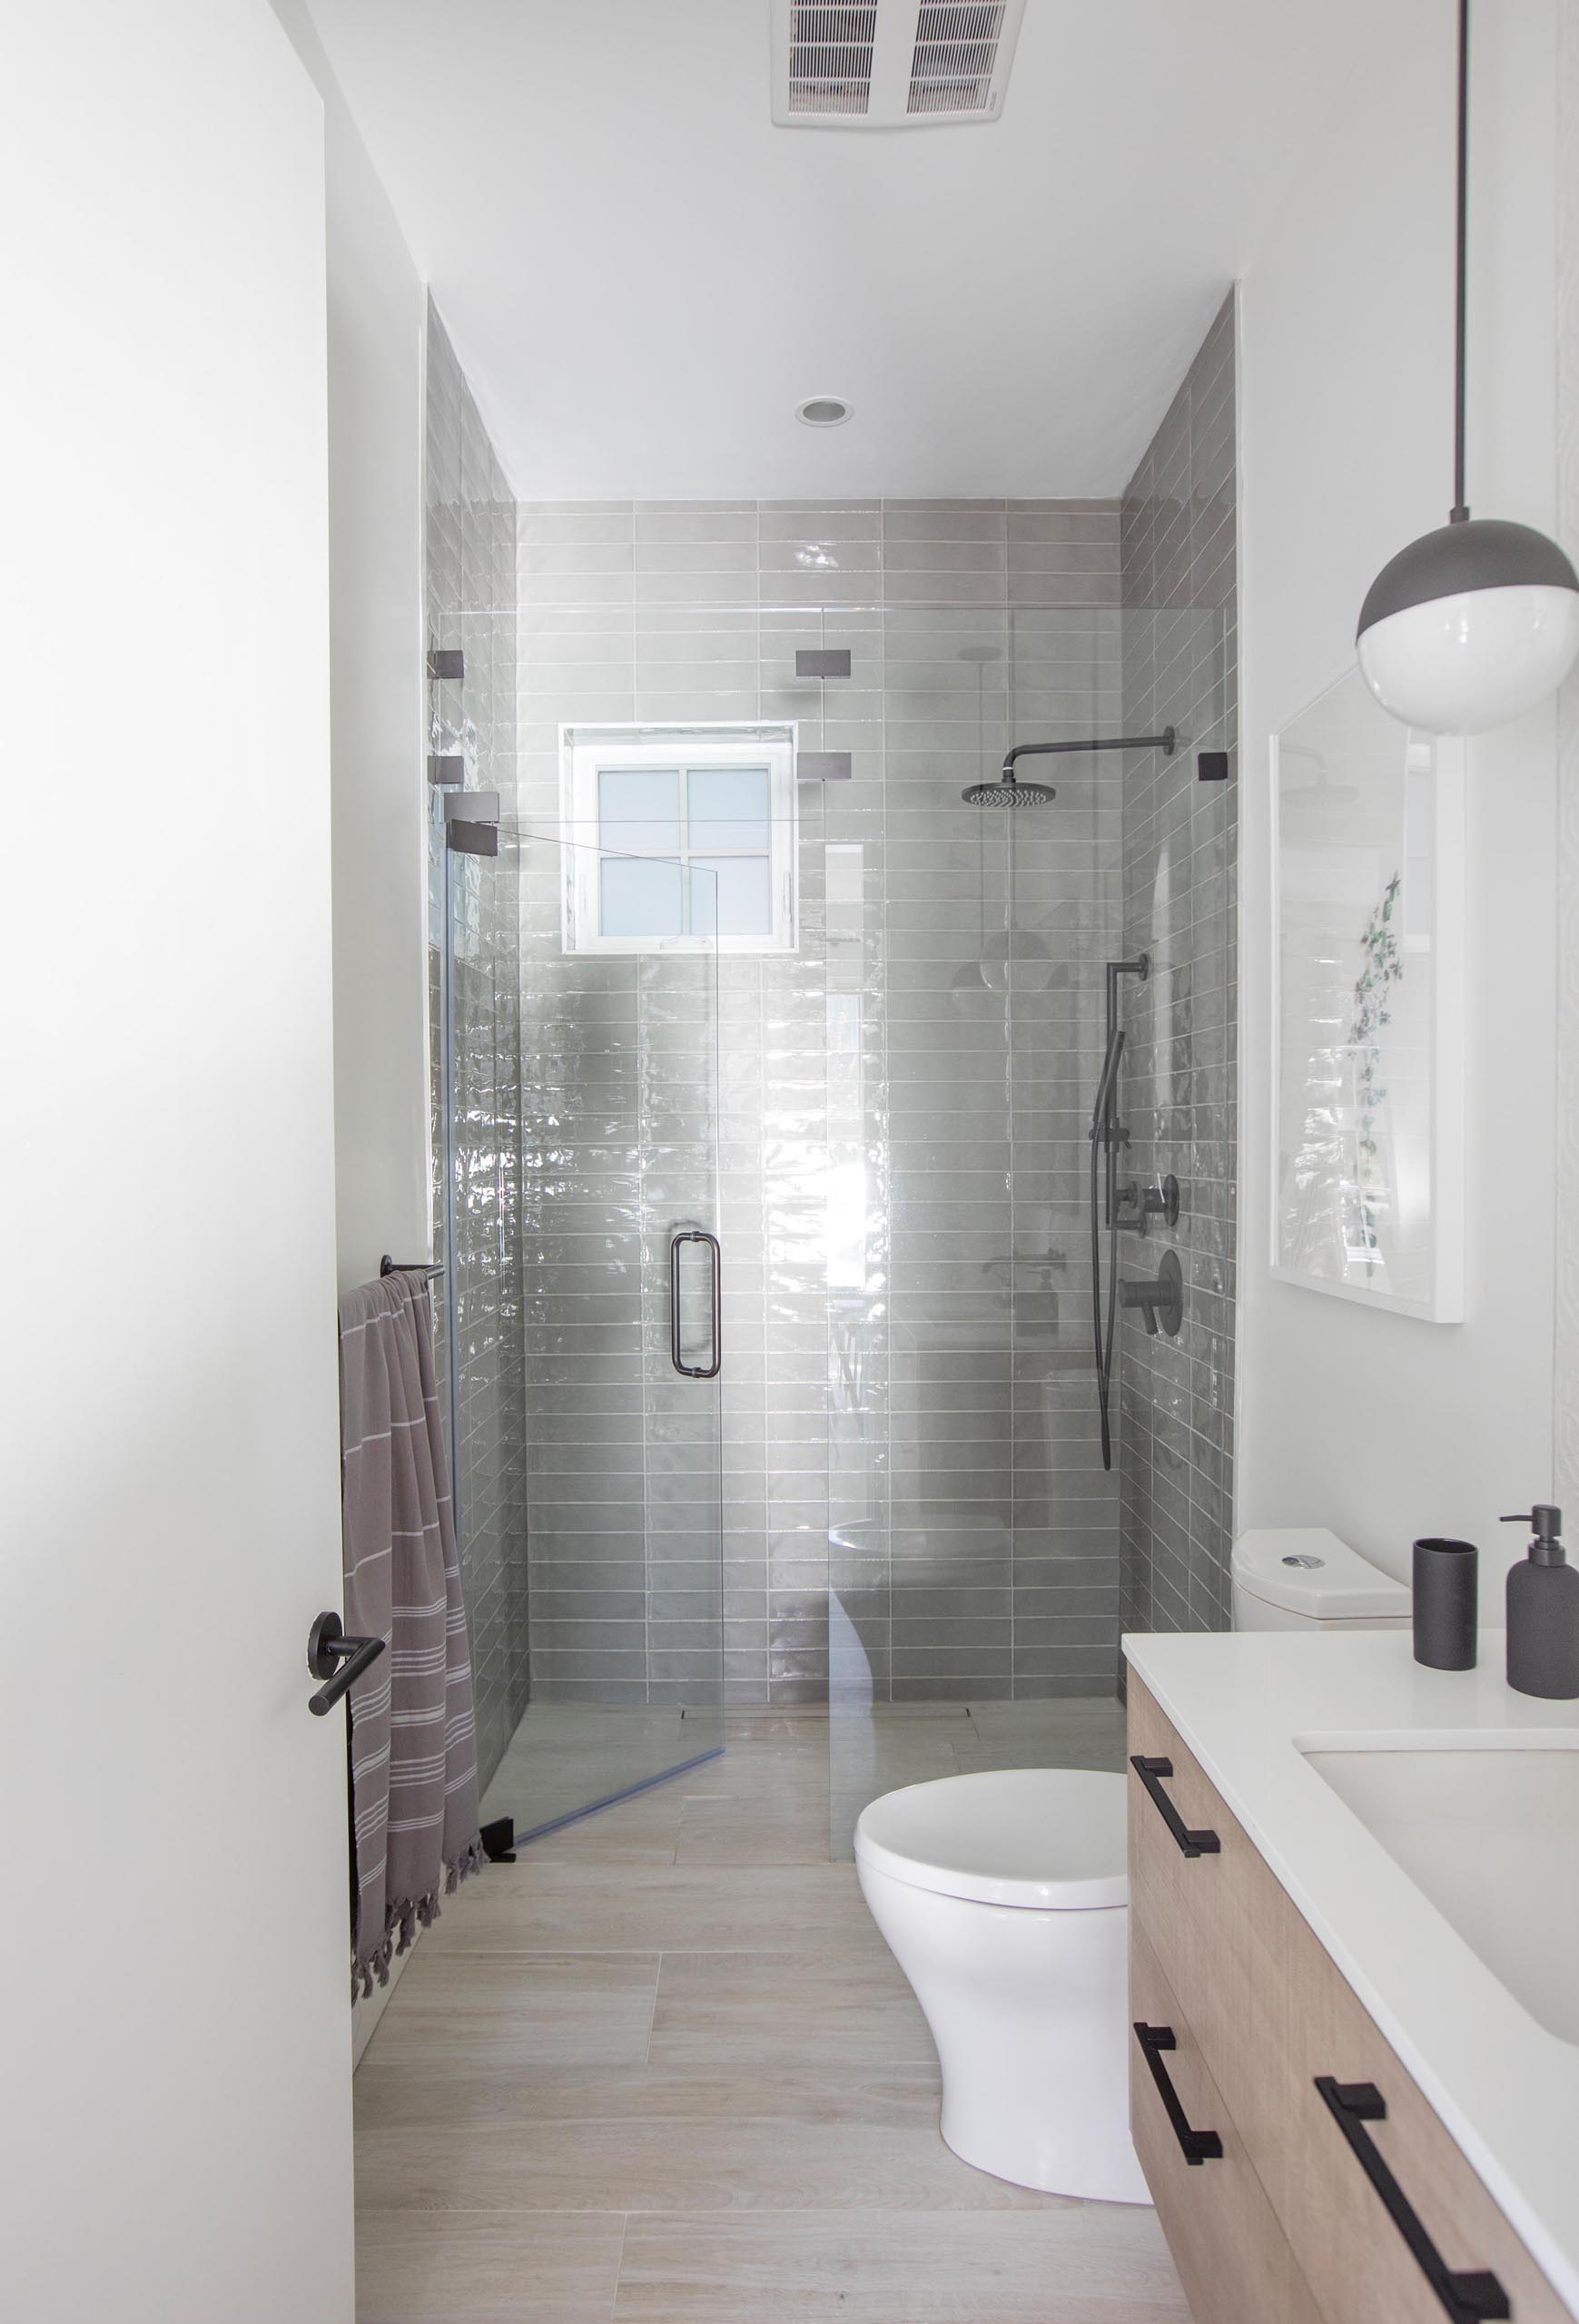 A modern bathroom that includes a wood vanity with a white countertop, and a shower lined with floor-to-ceiling gray tiles.